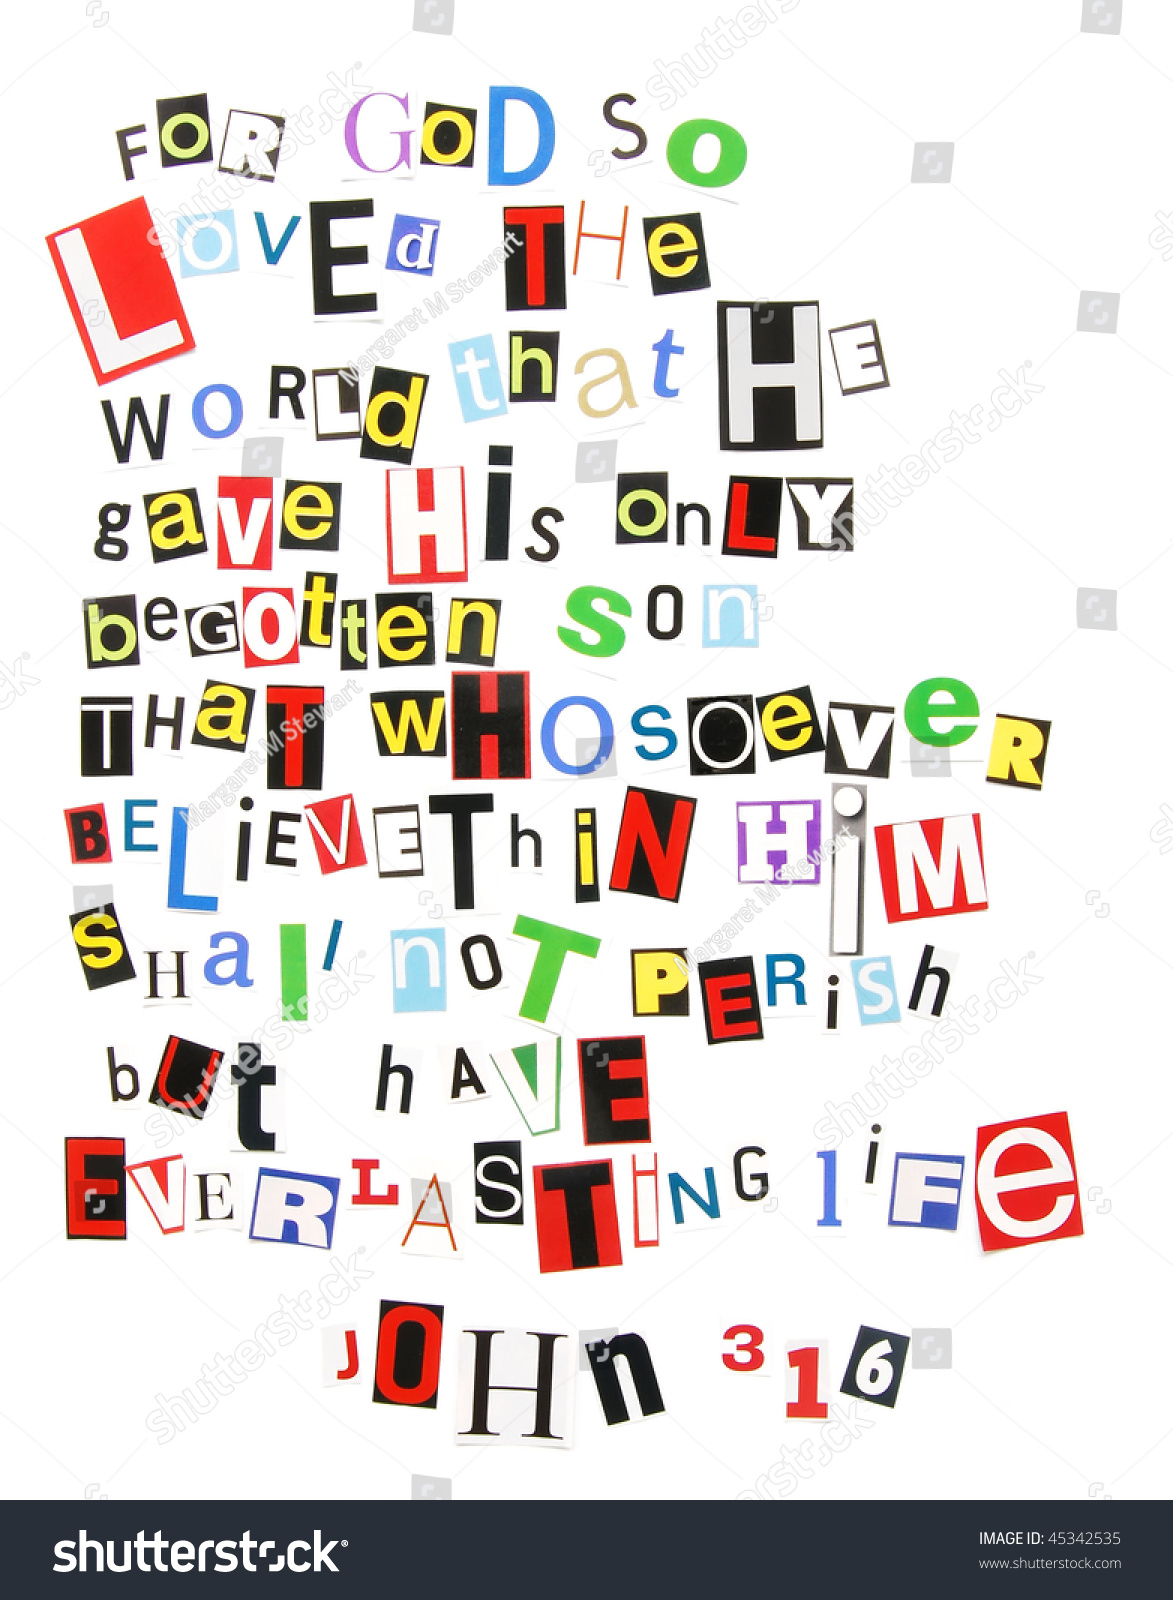 John 316 Ransom Note Style Stock Photo 45342535